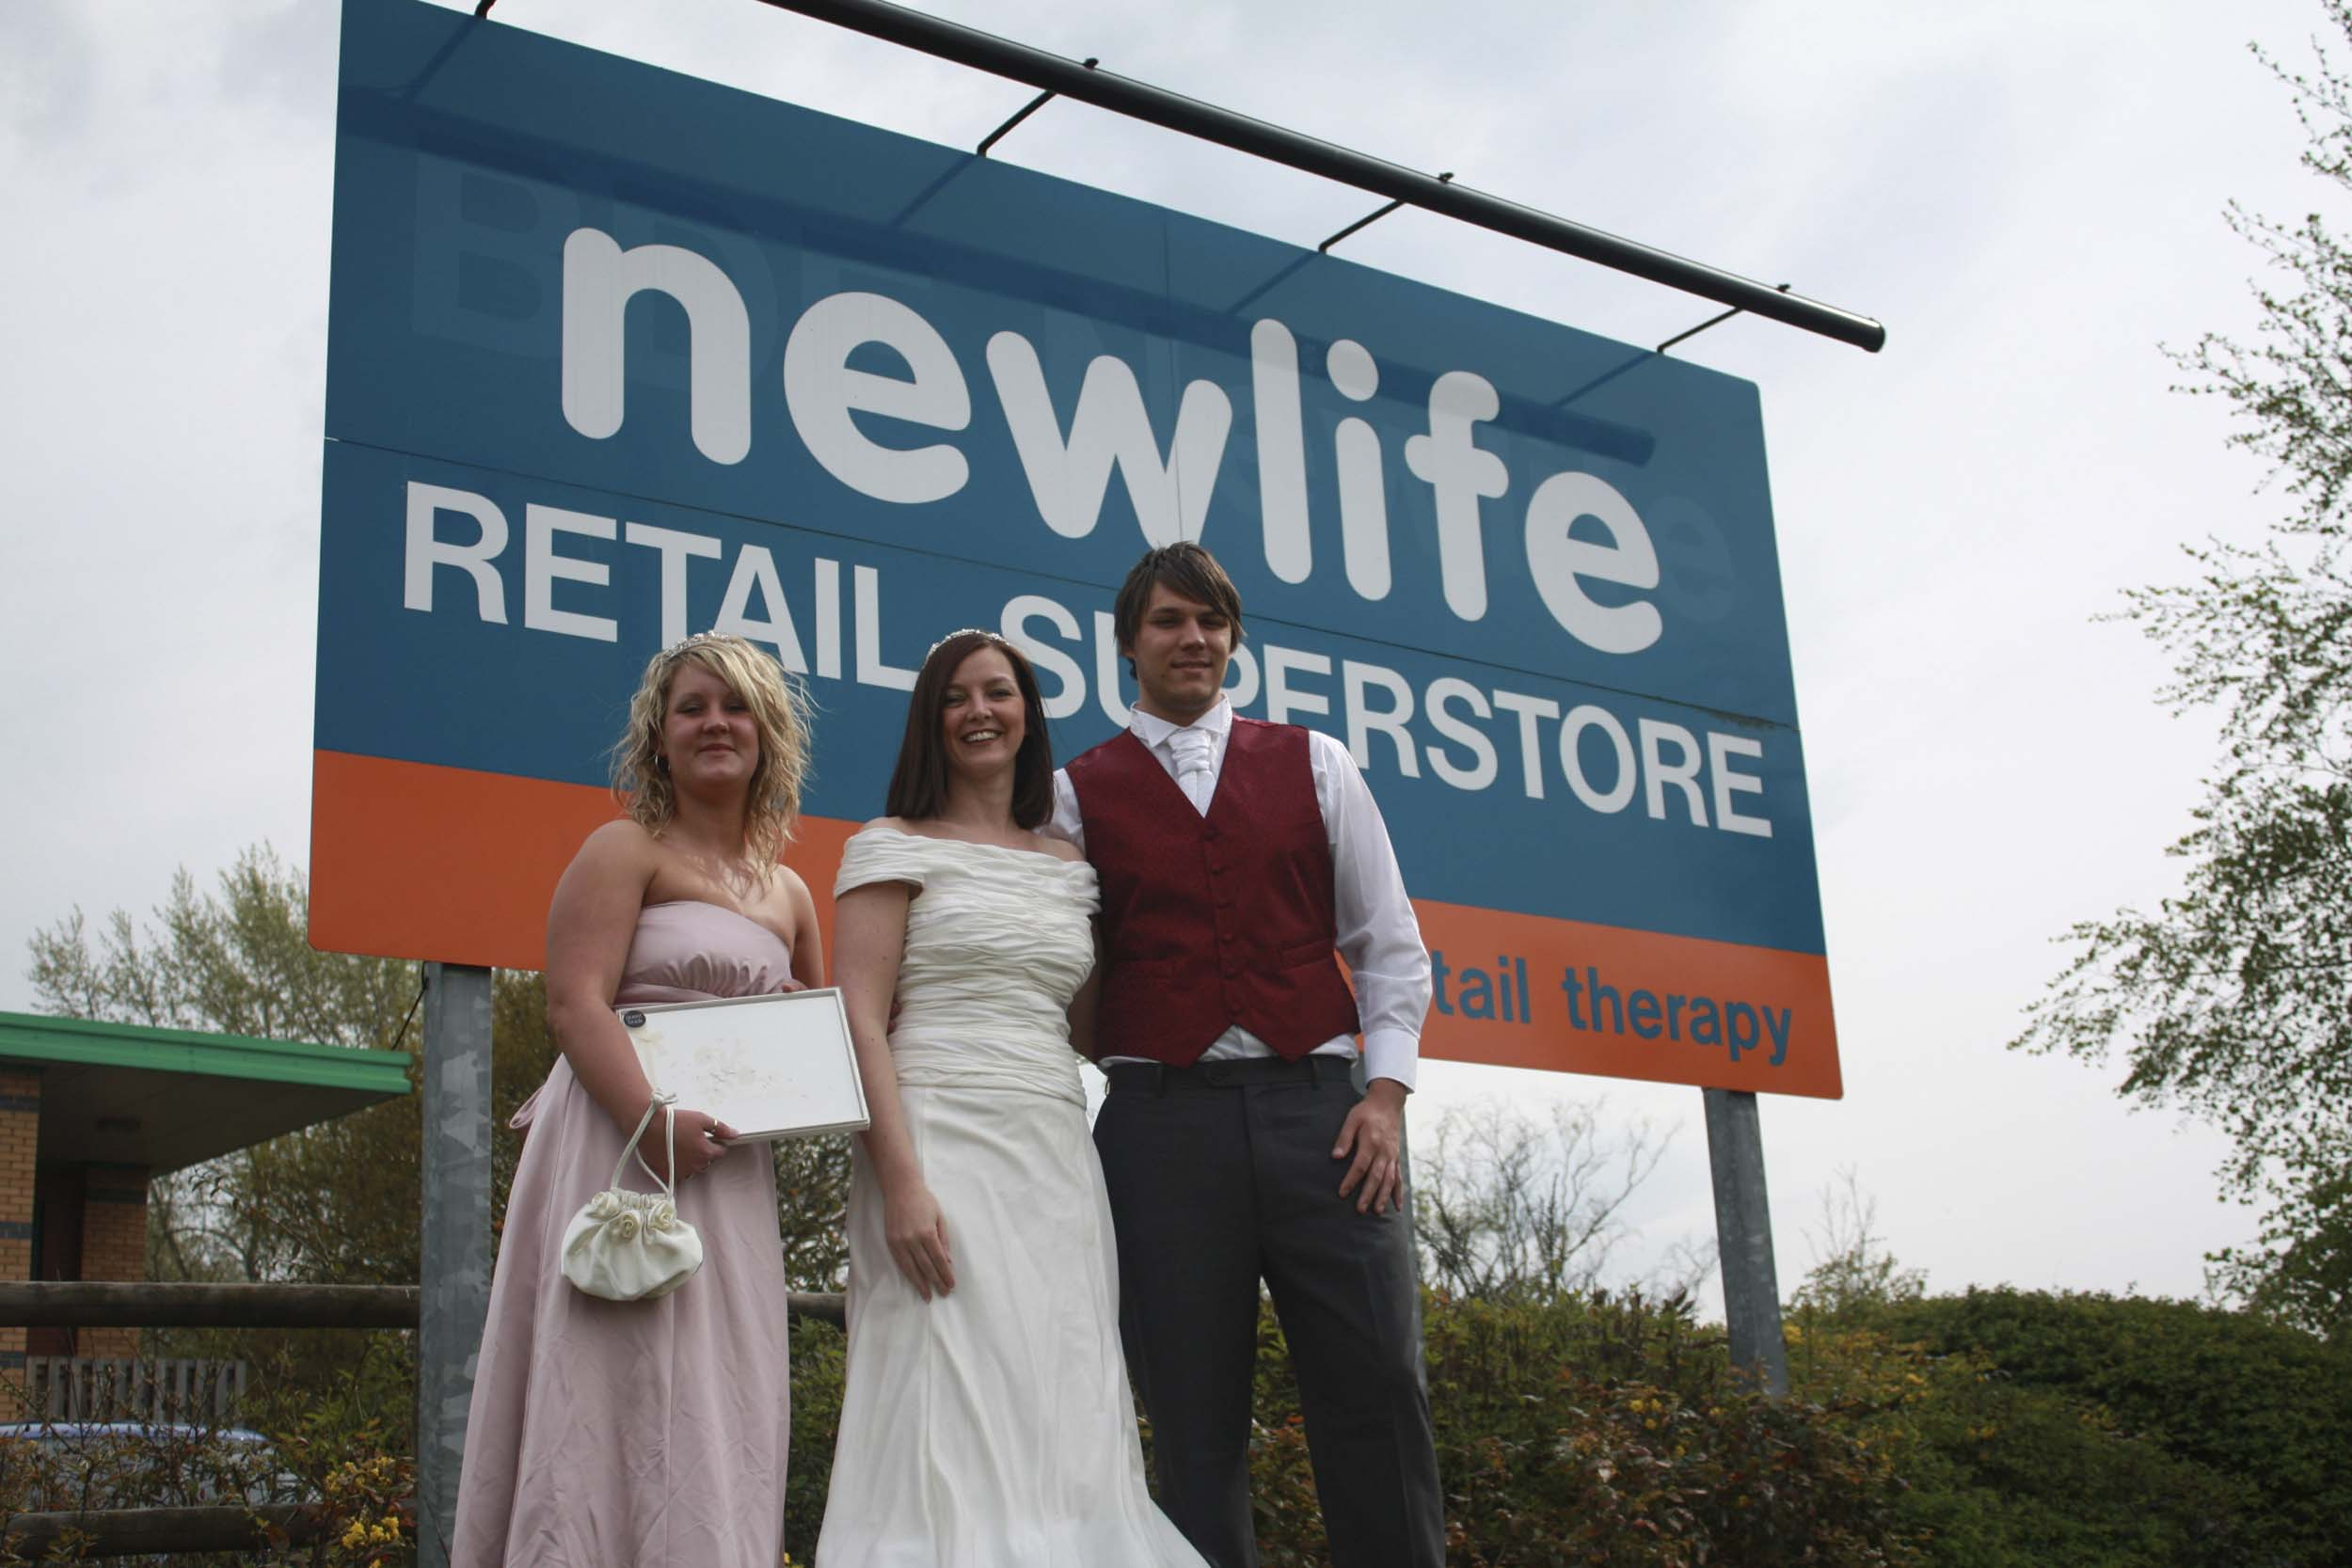 Beautiful Budget Brides-to-be Grab A Bargain At Newlife Superstore ...